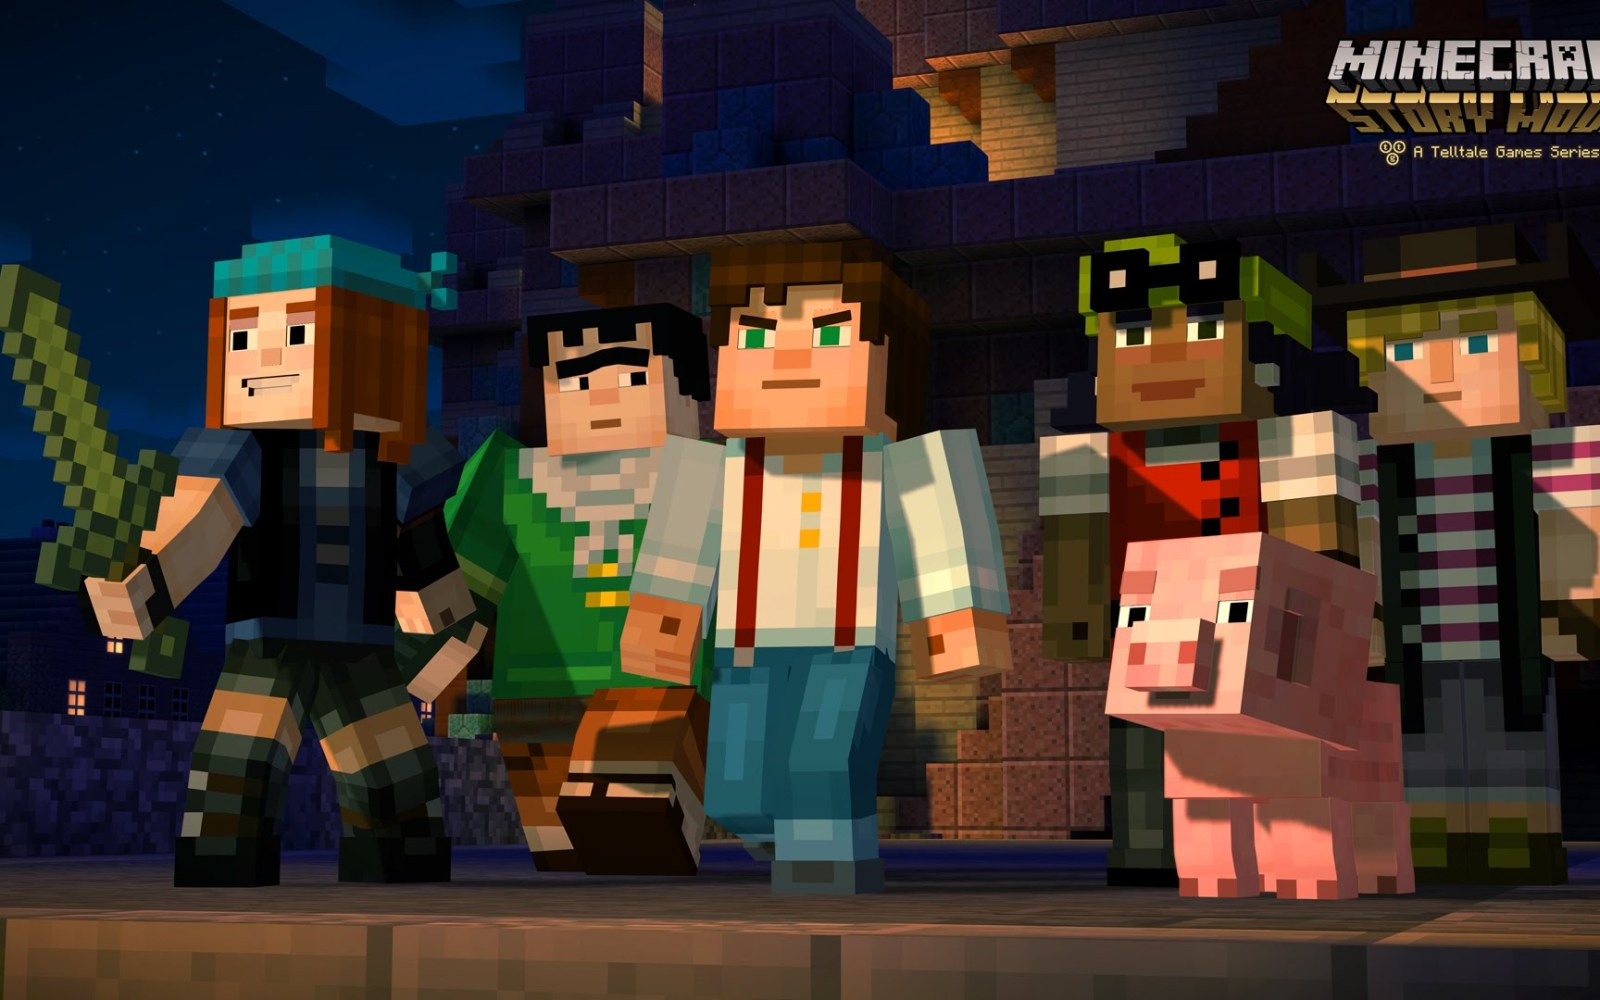 Minecraft: Story Mode launches on iOS with a new multi-episode campaign mode